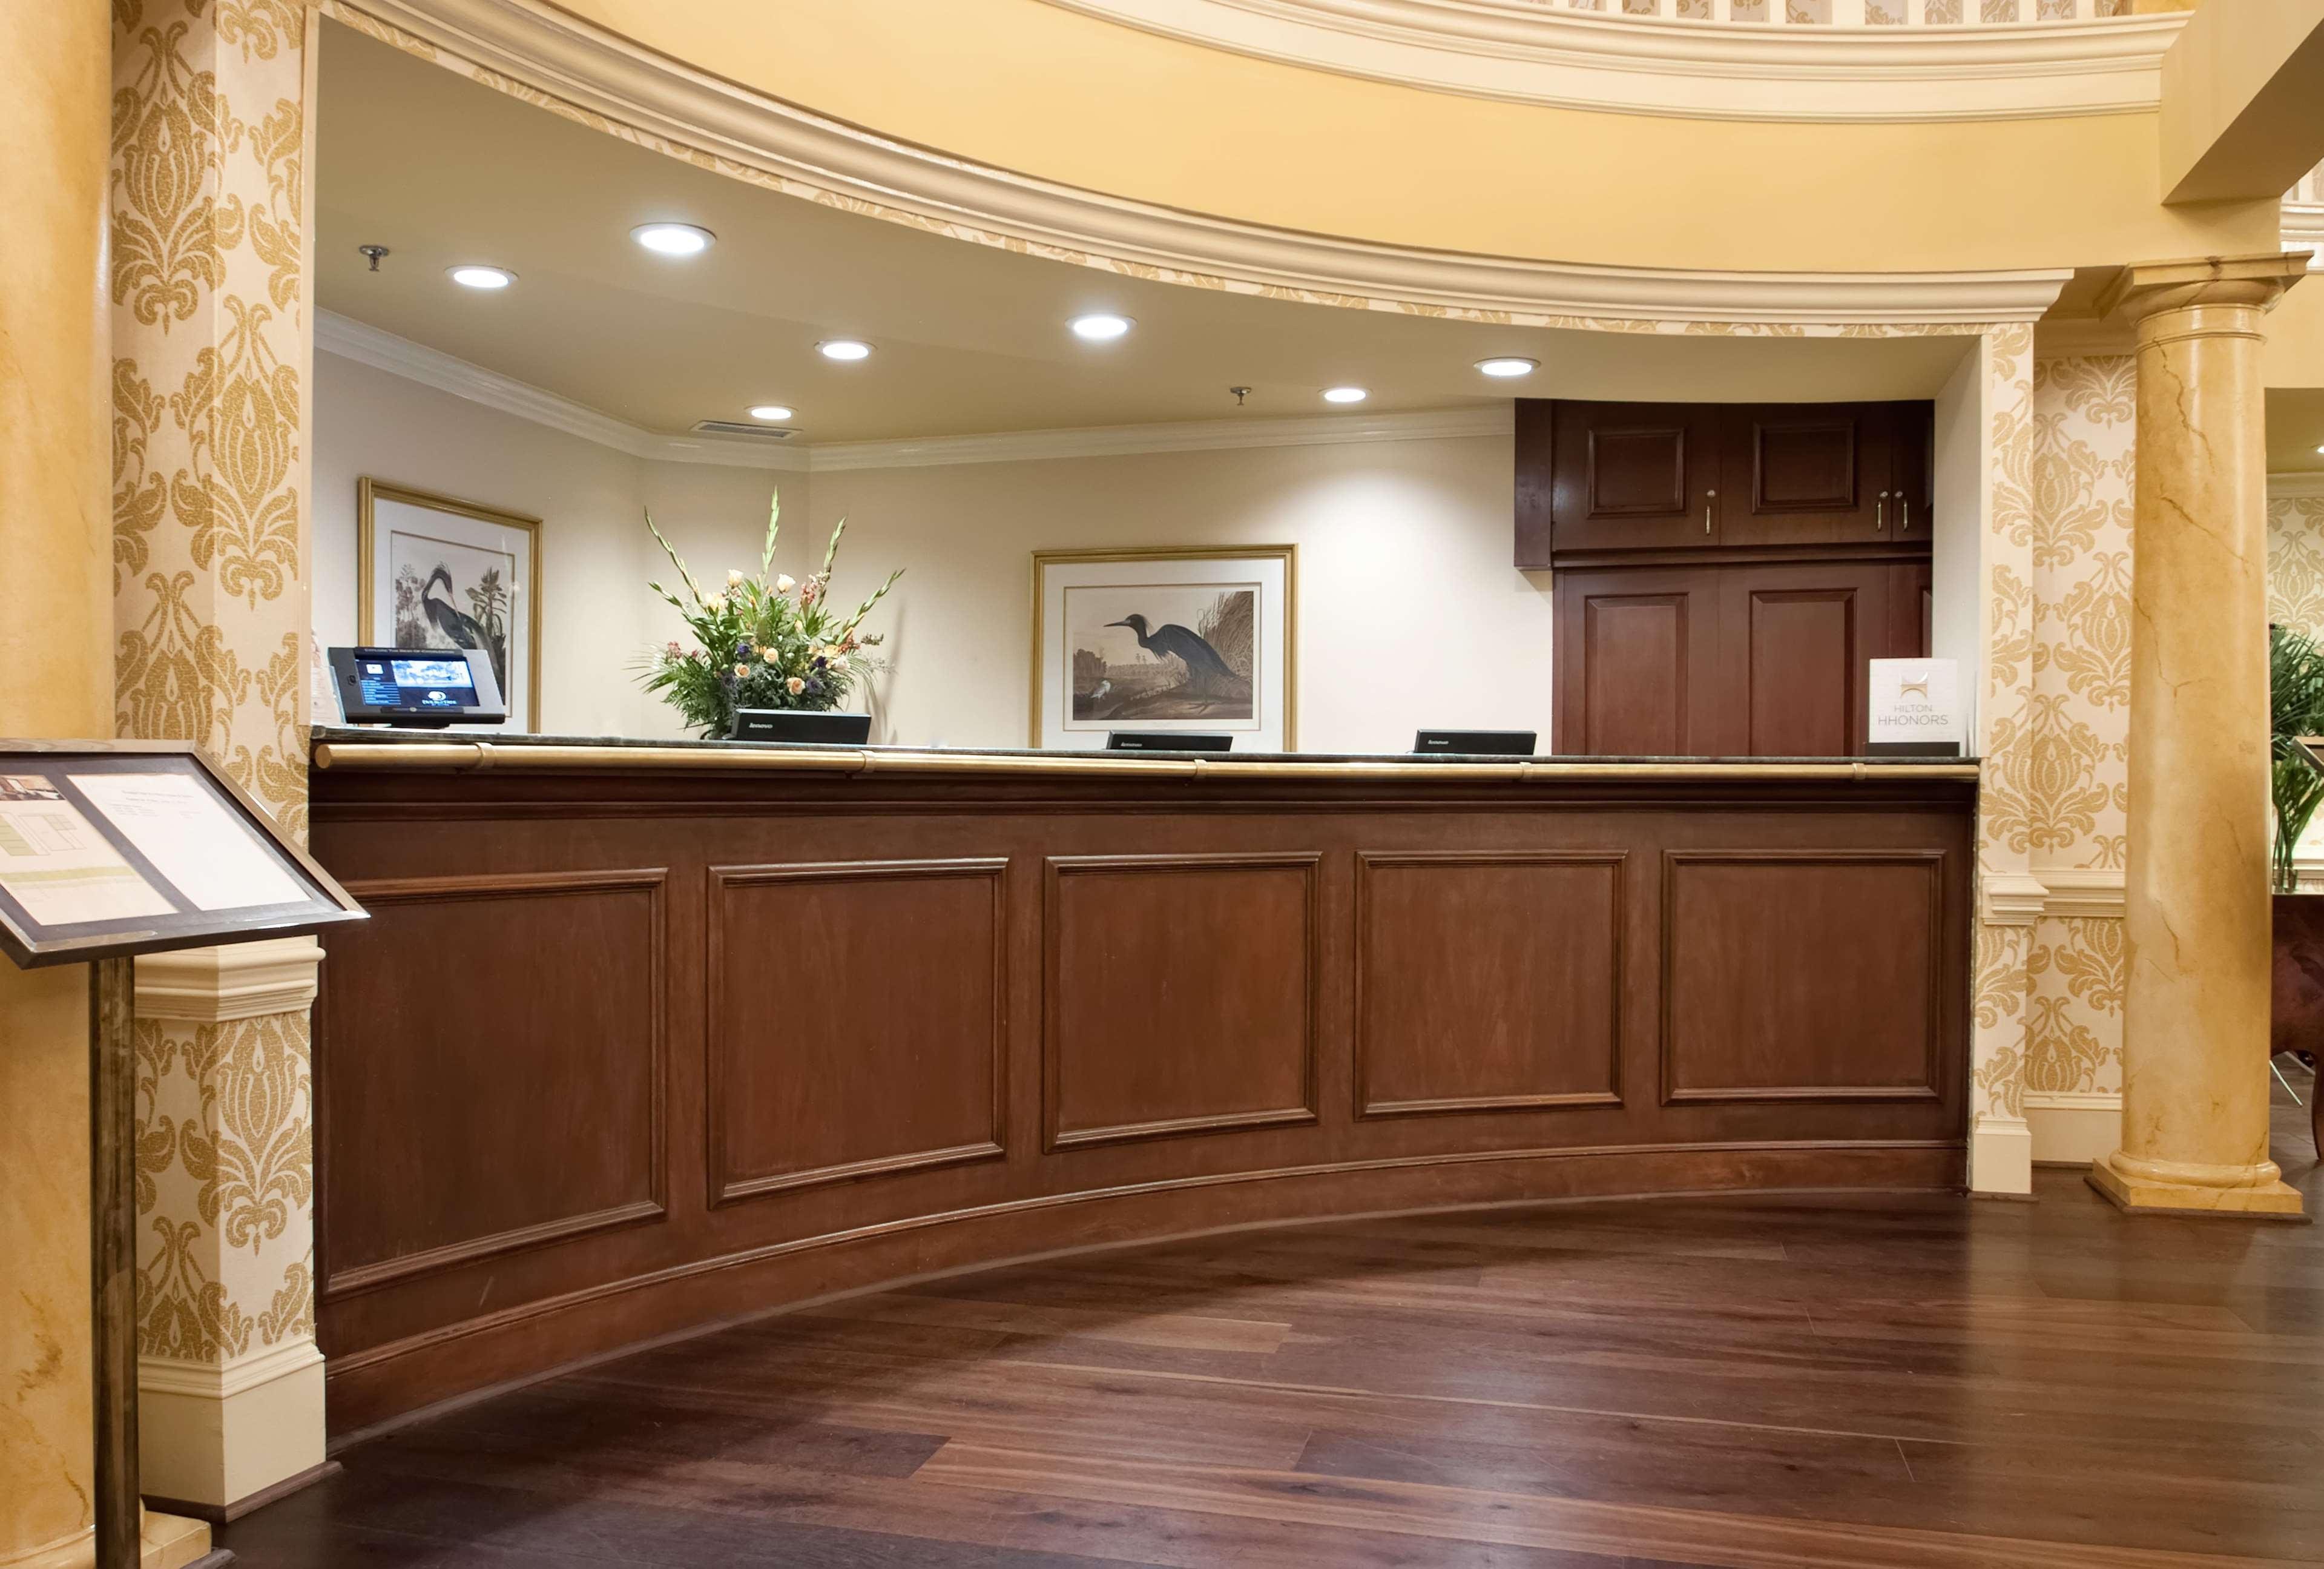 DoubleTree by Hilton Hotel & Suites Charleston - Historic District image 7